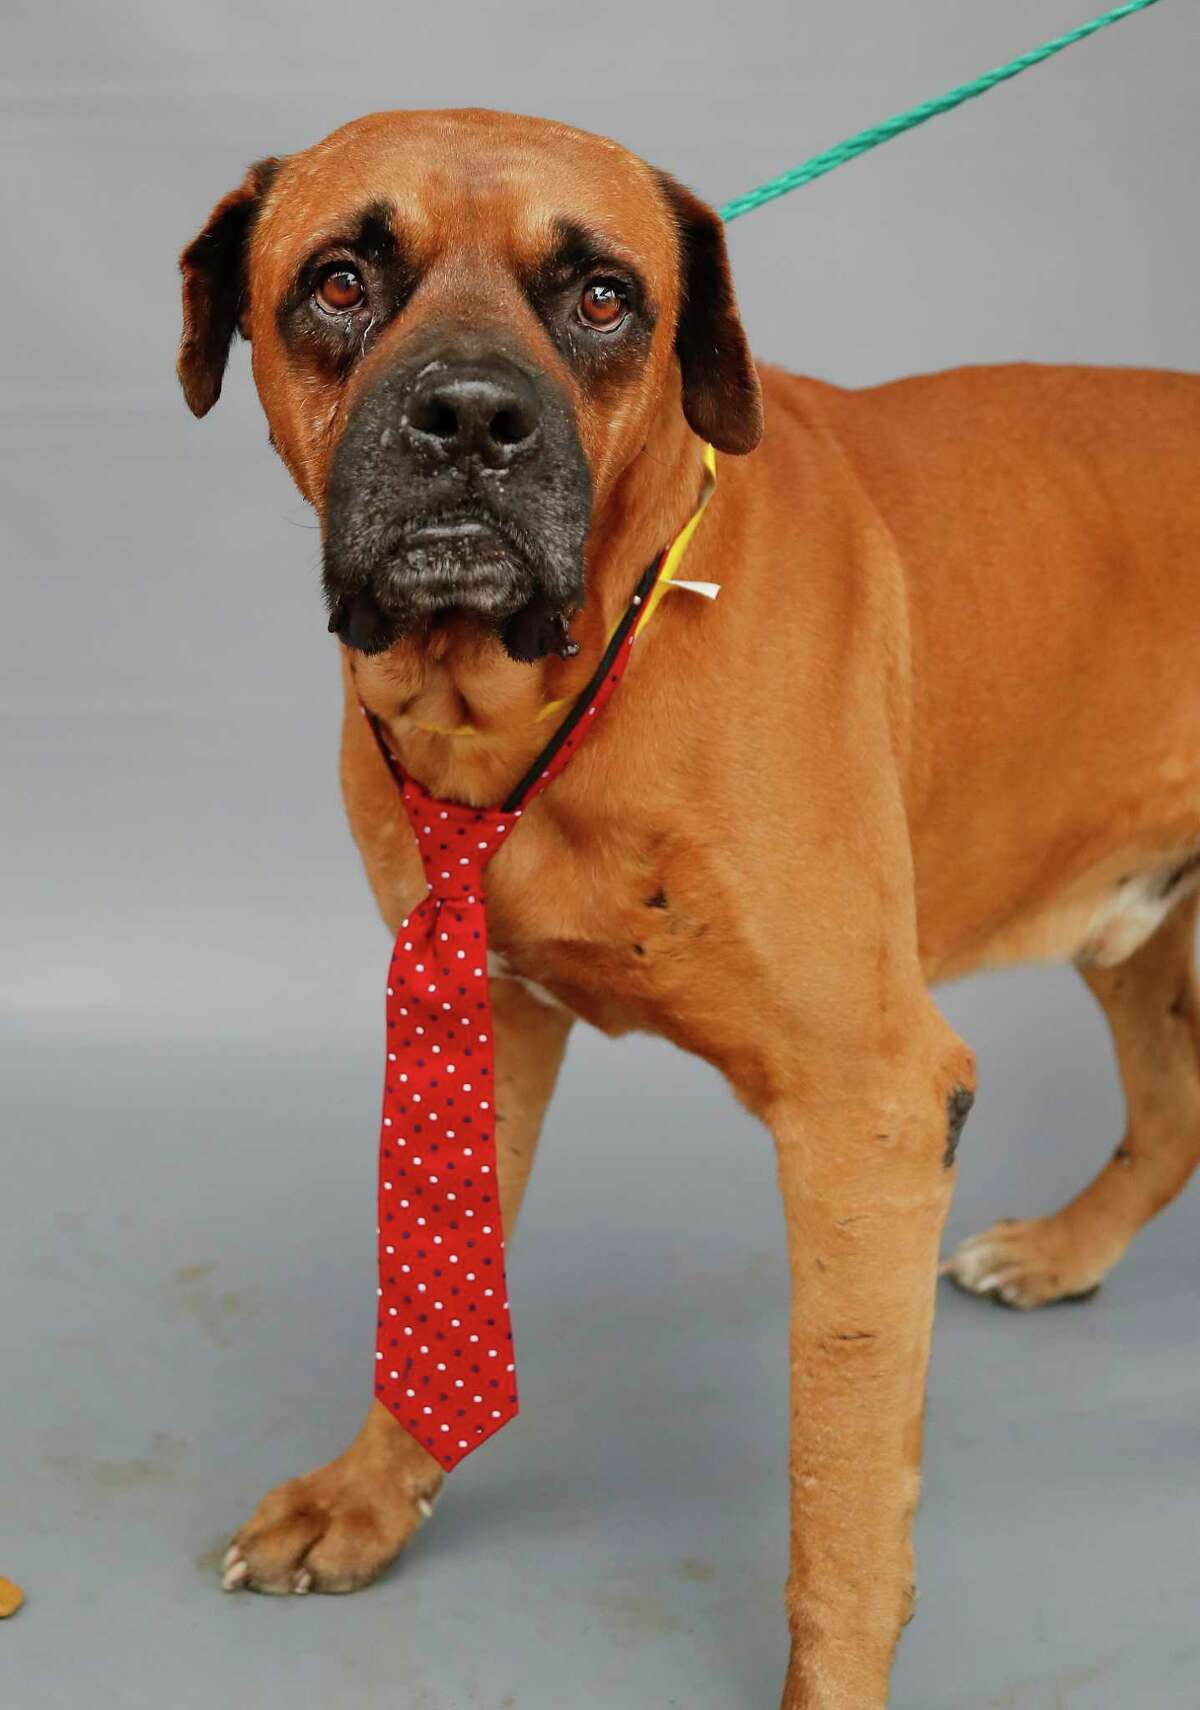 Billy Bob (A567029) is a 10-year-old, male Boxer mix available for adoption from Harris County Pets. Billy Bob weighs in at 83 pounds and is the oldest dog at Harris County Pets at the moment. Staff describe him as a